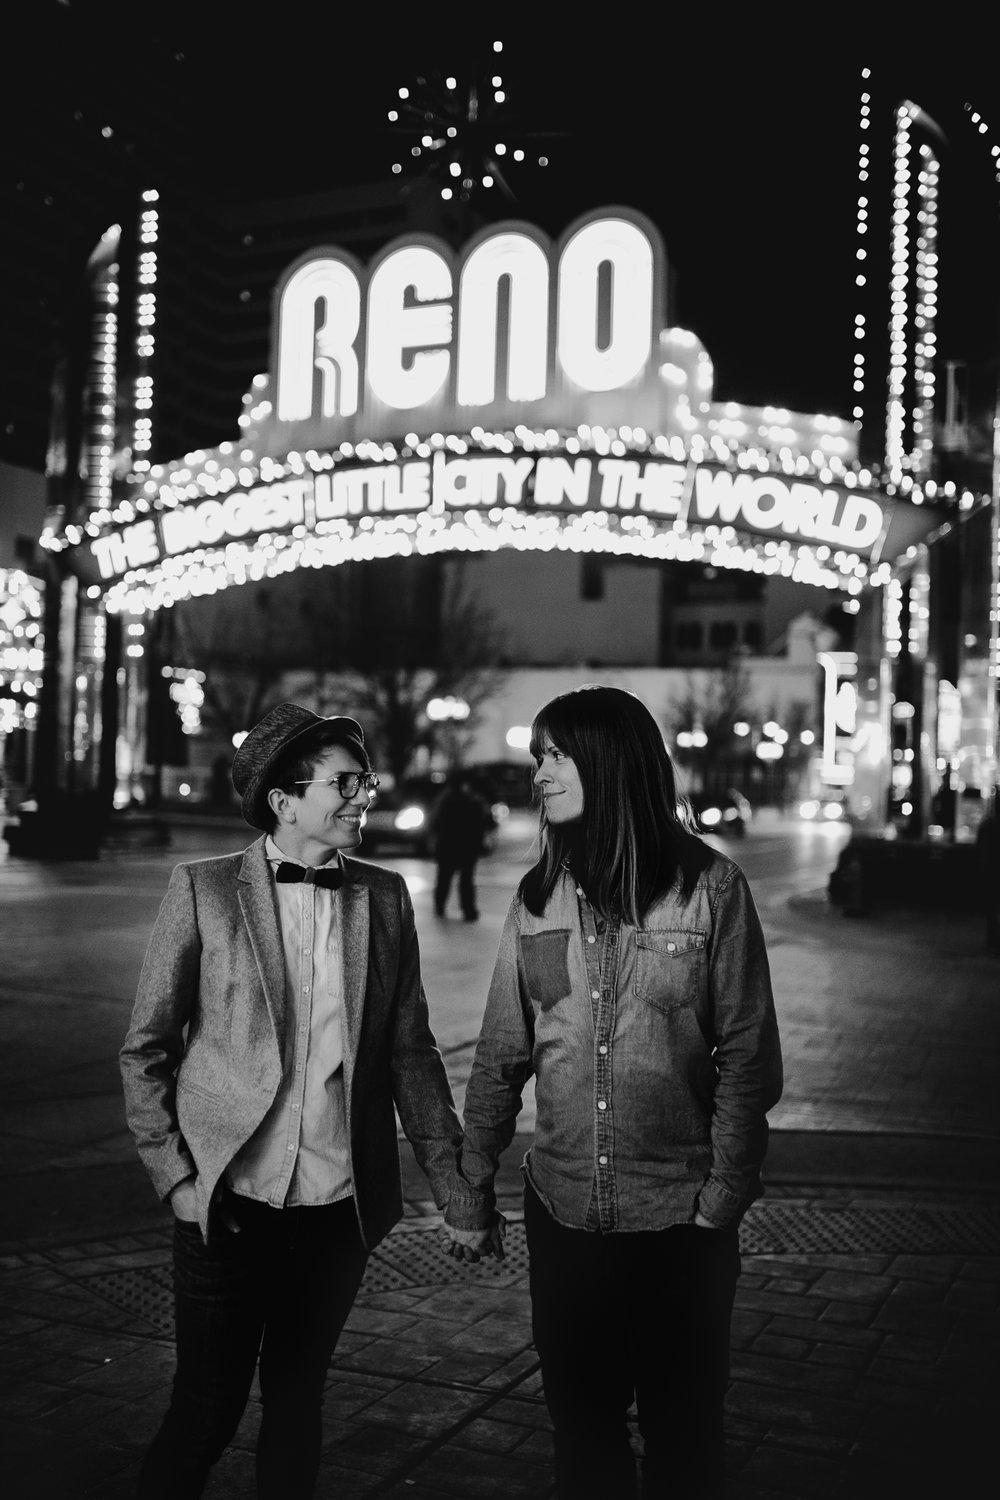 Archer Inspired Photography Hilary and Gia LGTBQ Reno Nevada Couple Wedding Engagement Photographer-6.jpg